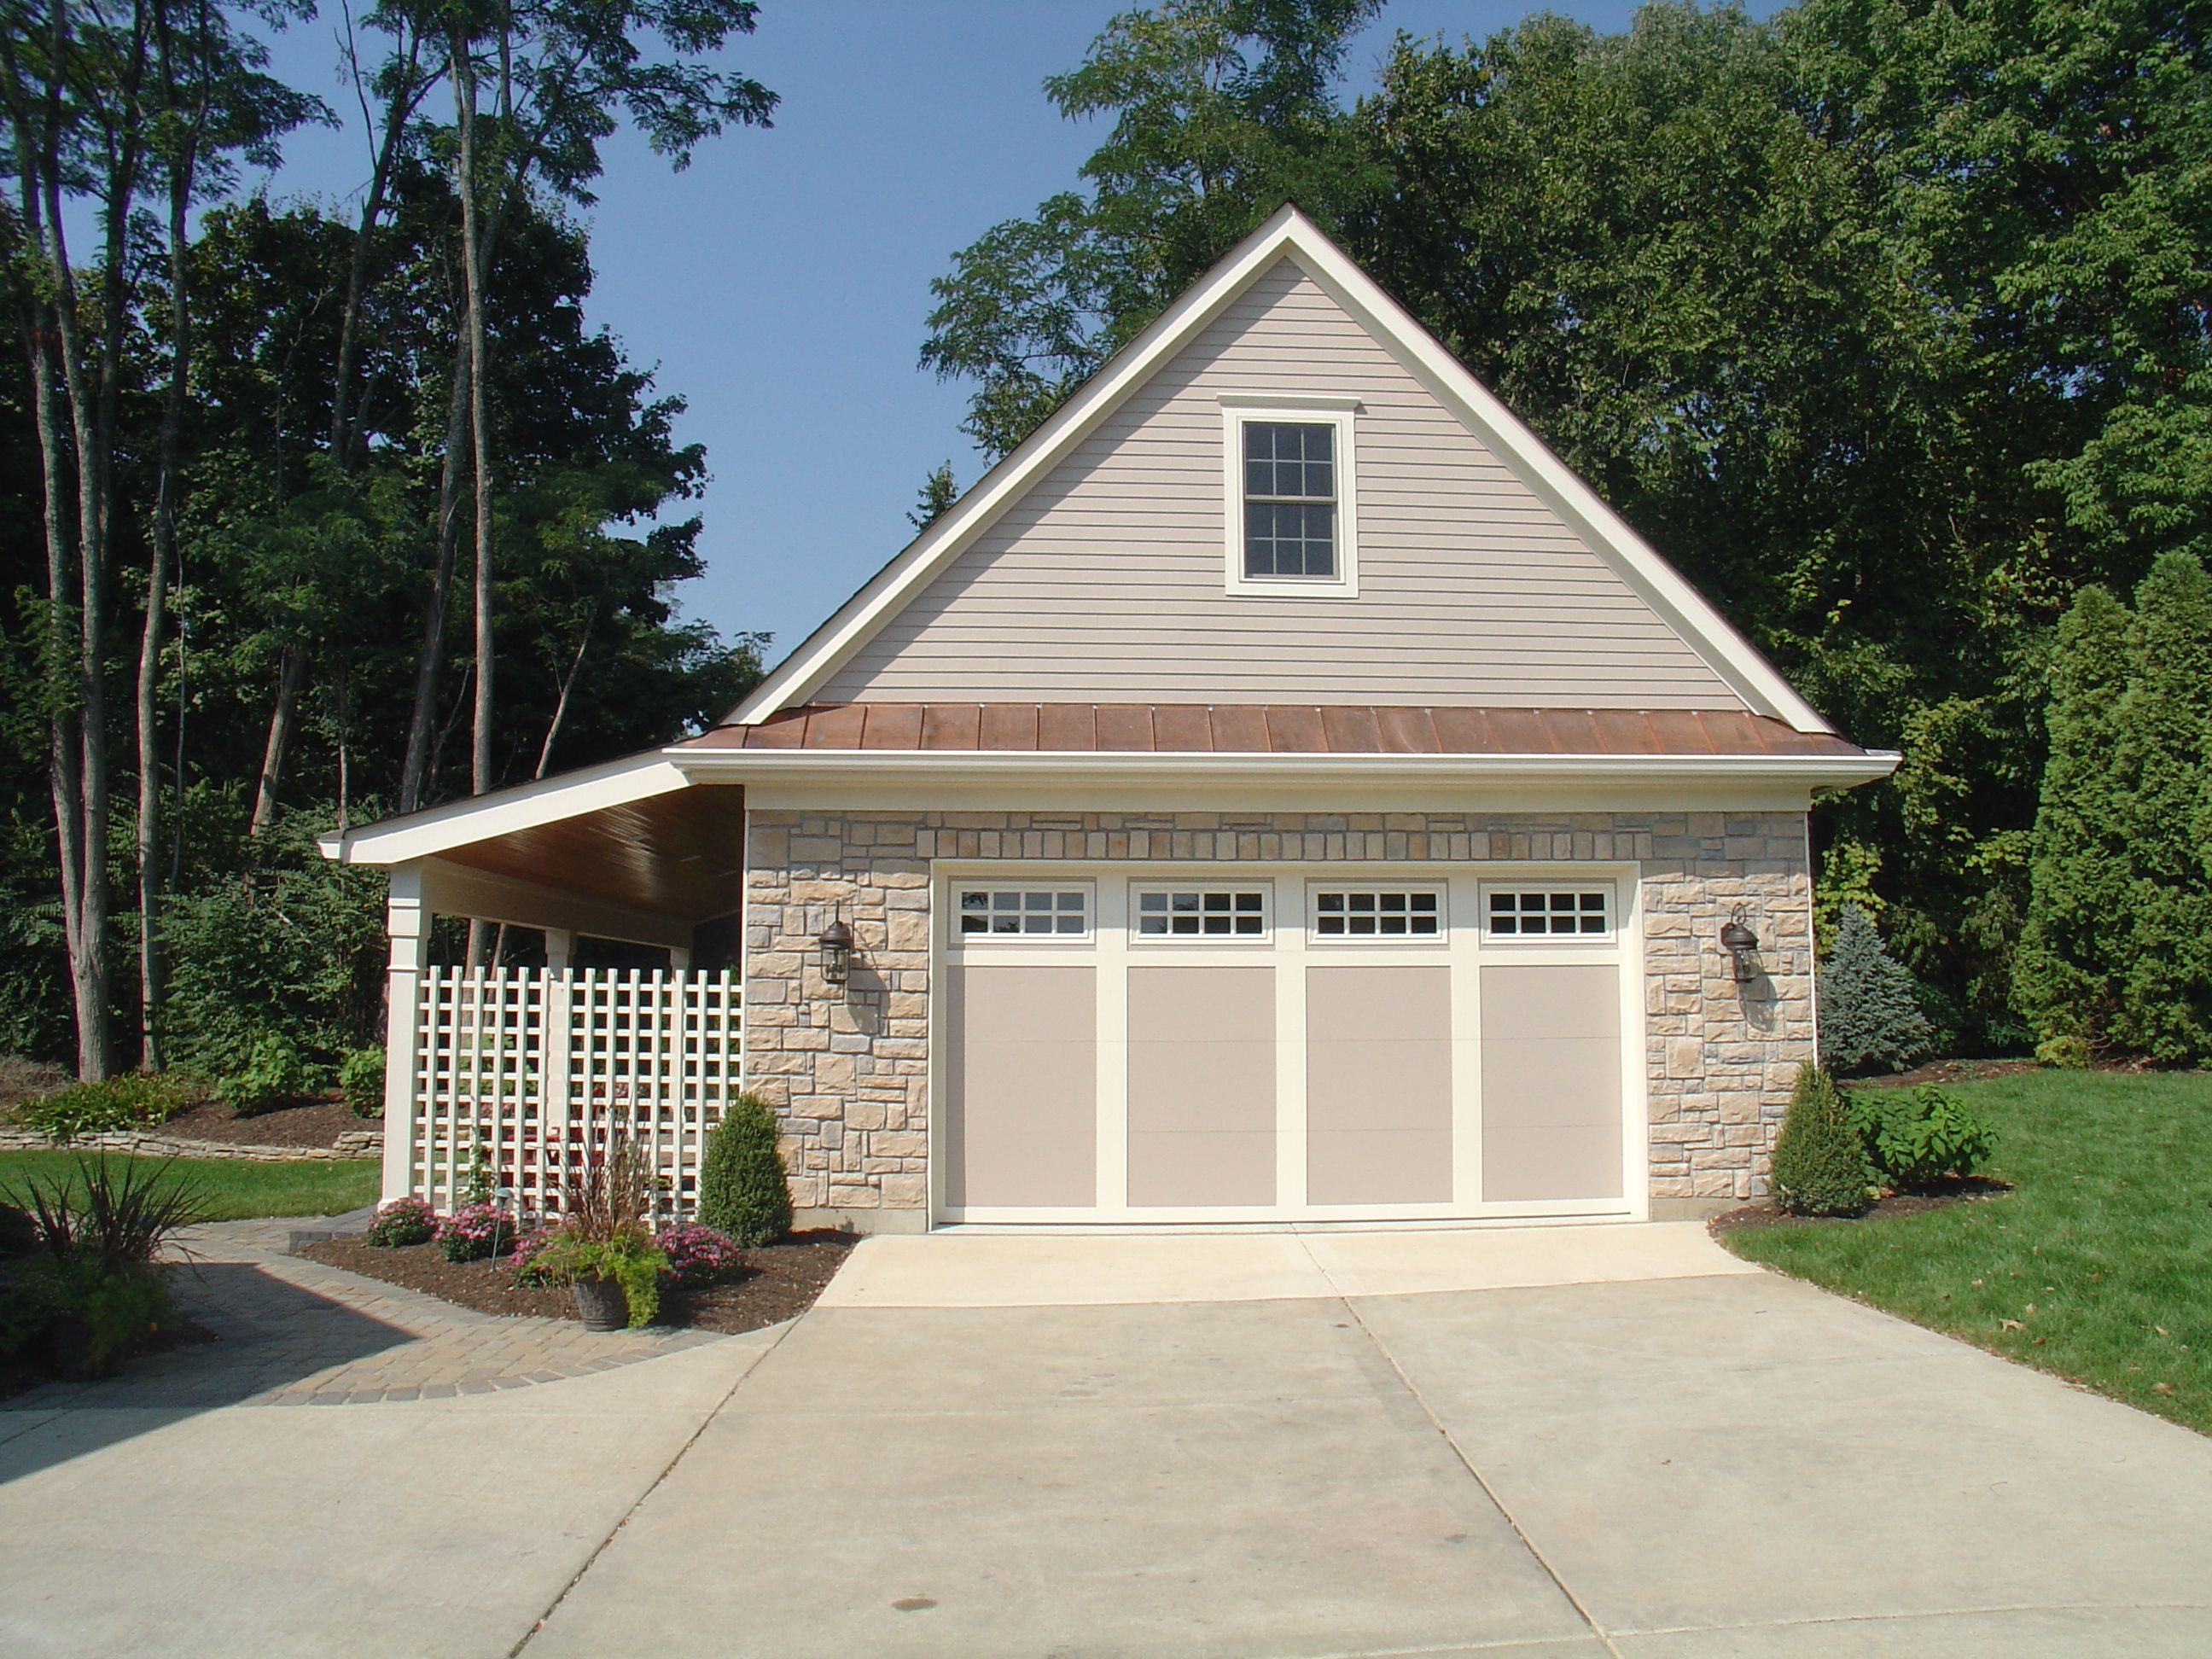 Another version of a detached garage with porch to the for Detached garage with loft